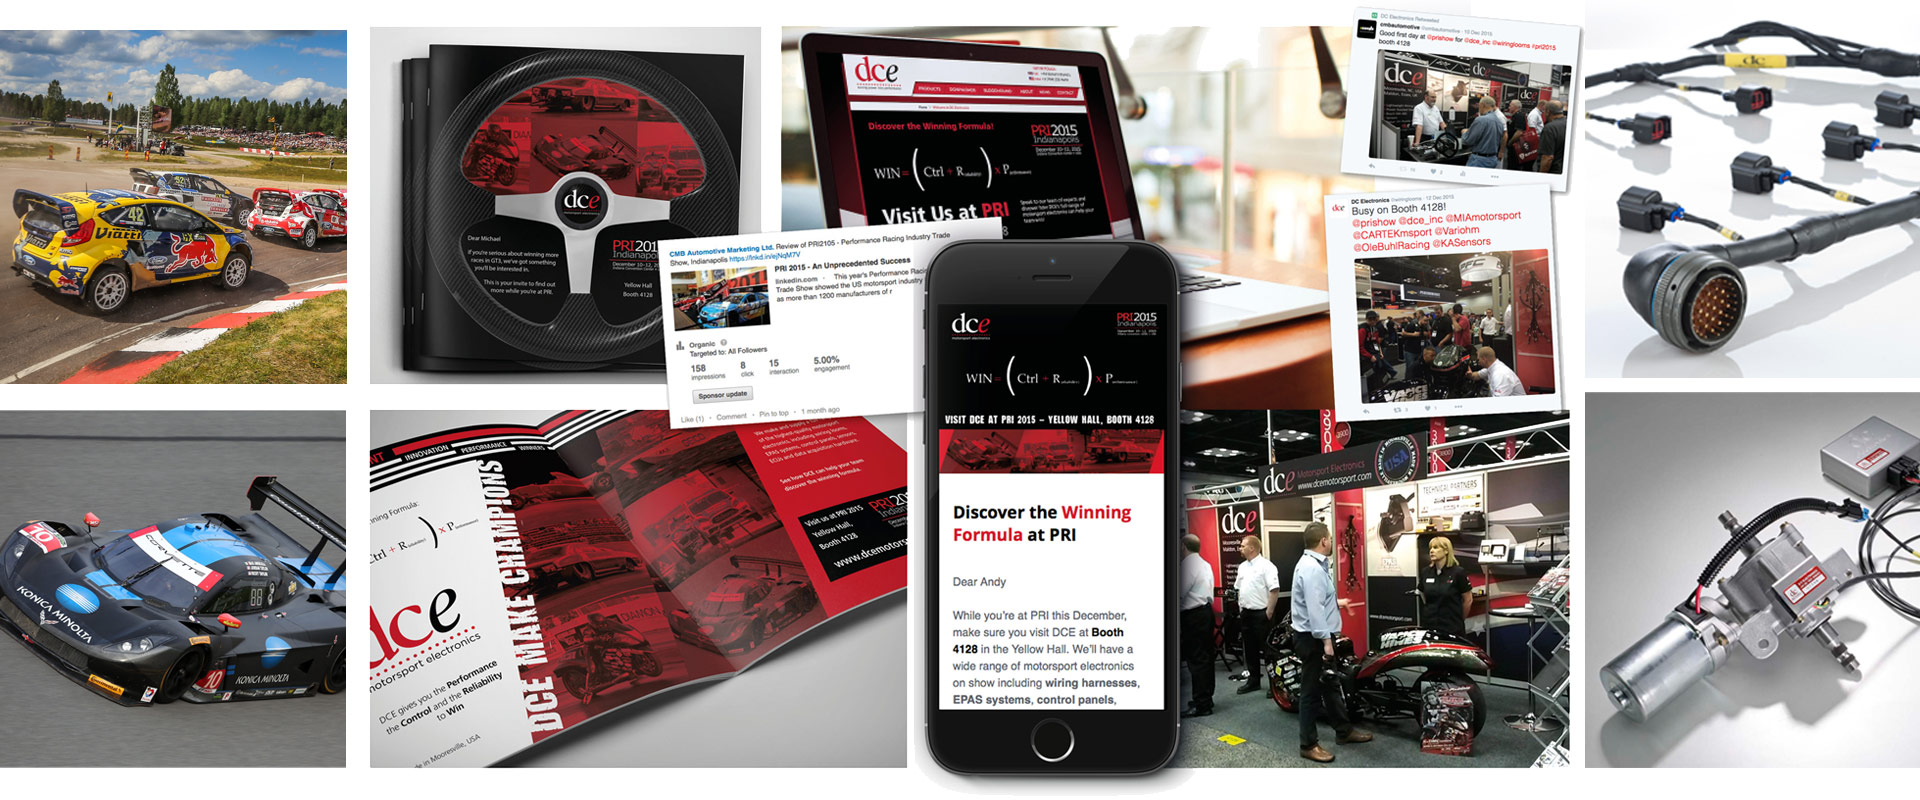 automotive trade show marketing and promotional campaign